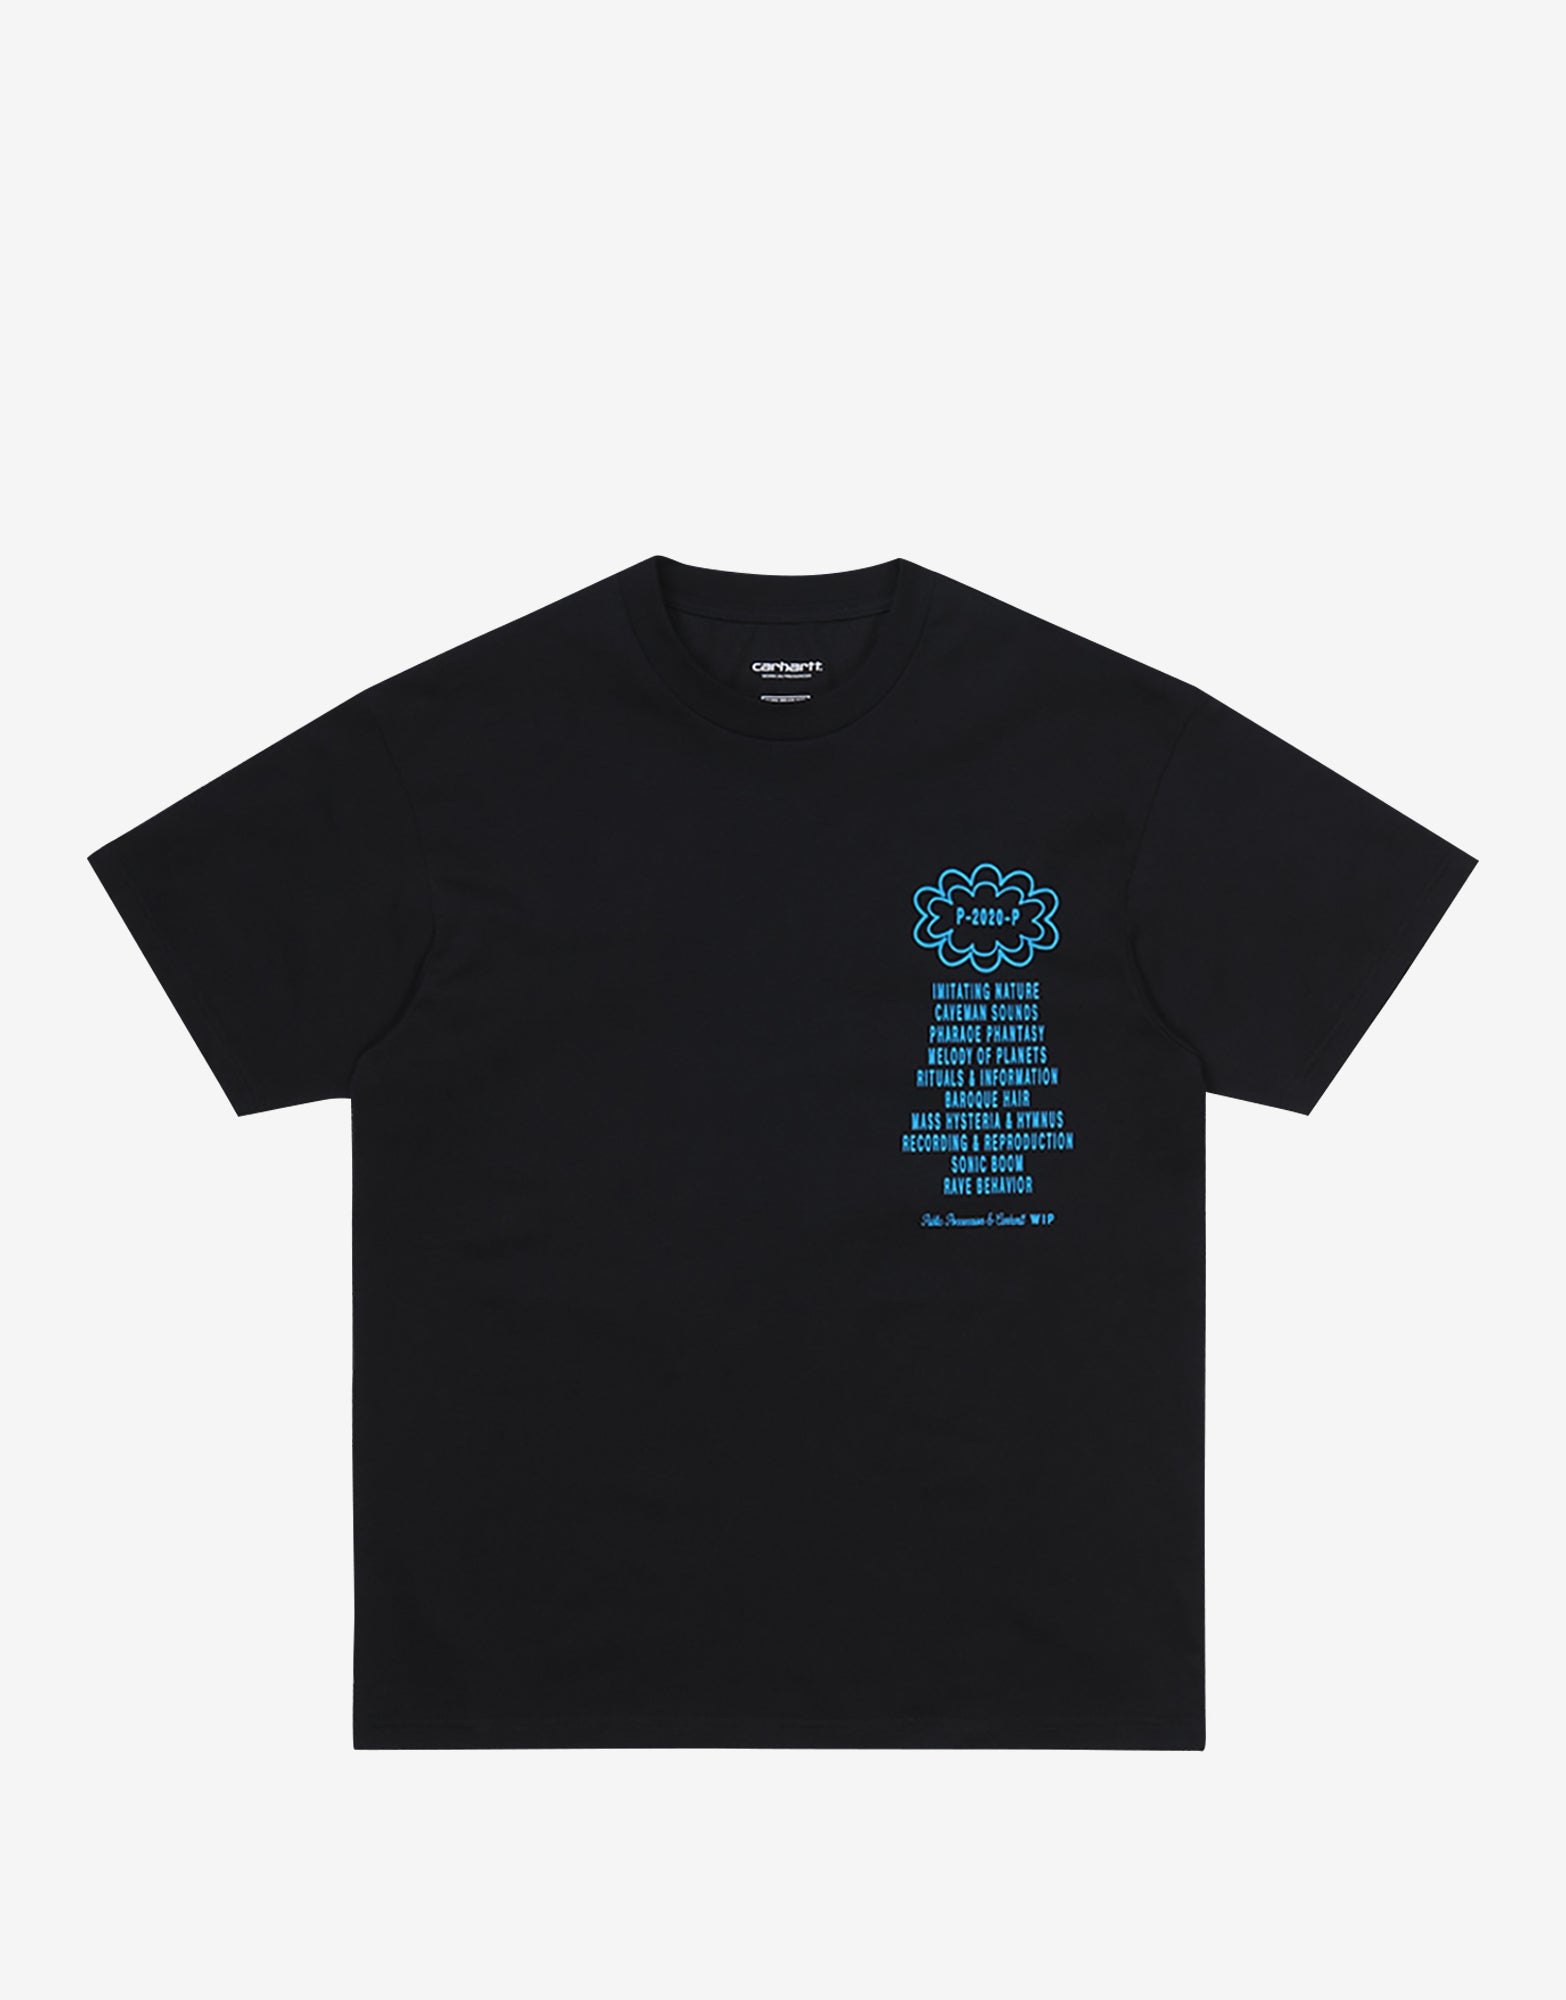 Carhartt WIP x Relevant Parties Public Possession T Shirt - Black/Blue